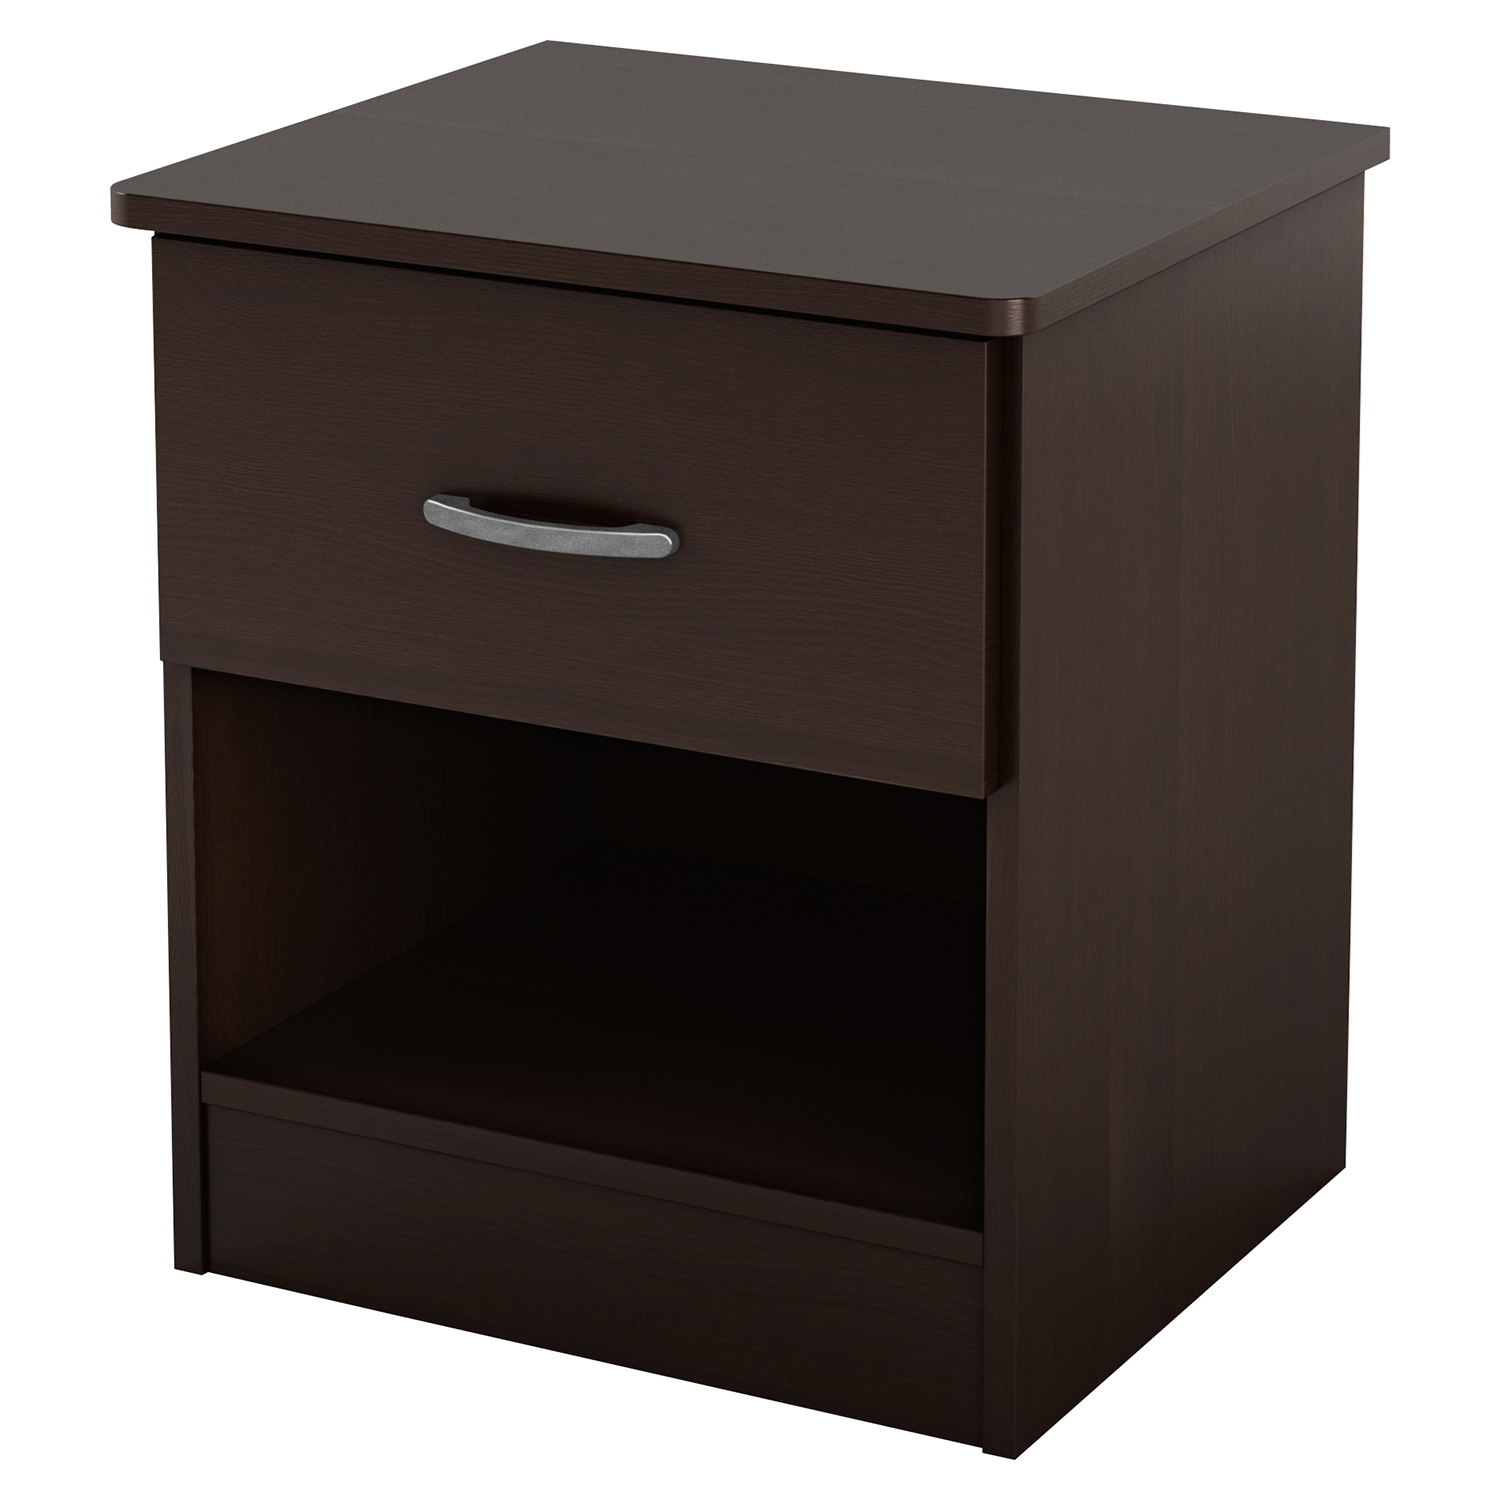 Libra Nightstand - 1 Drawer, Chocolate - SS-3159061